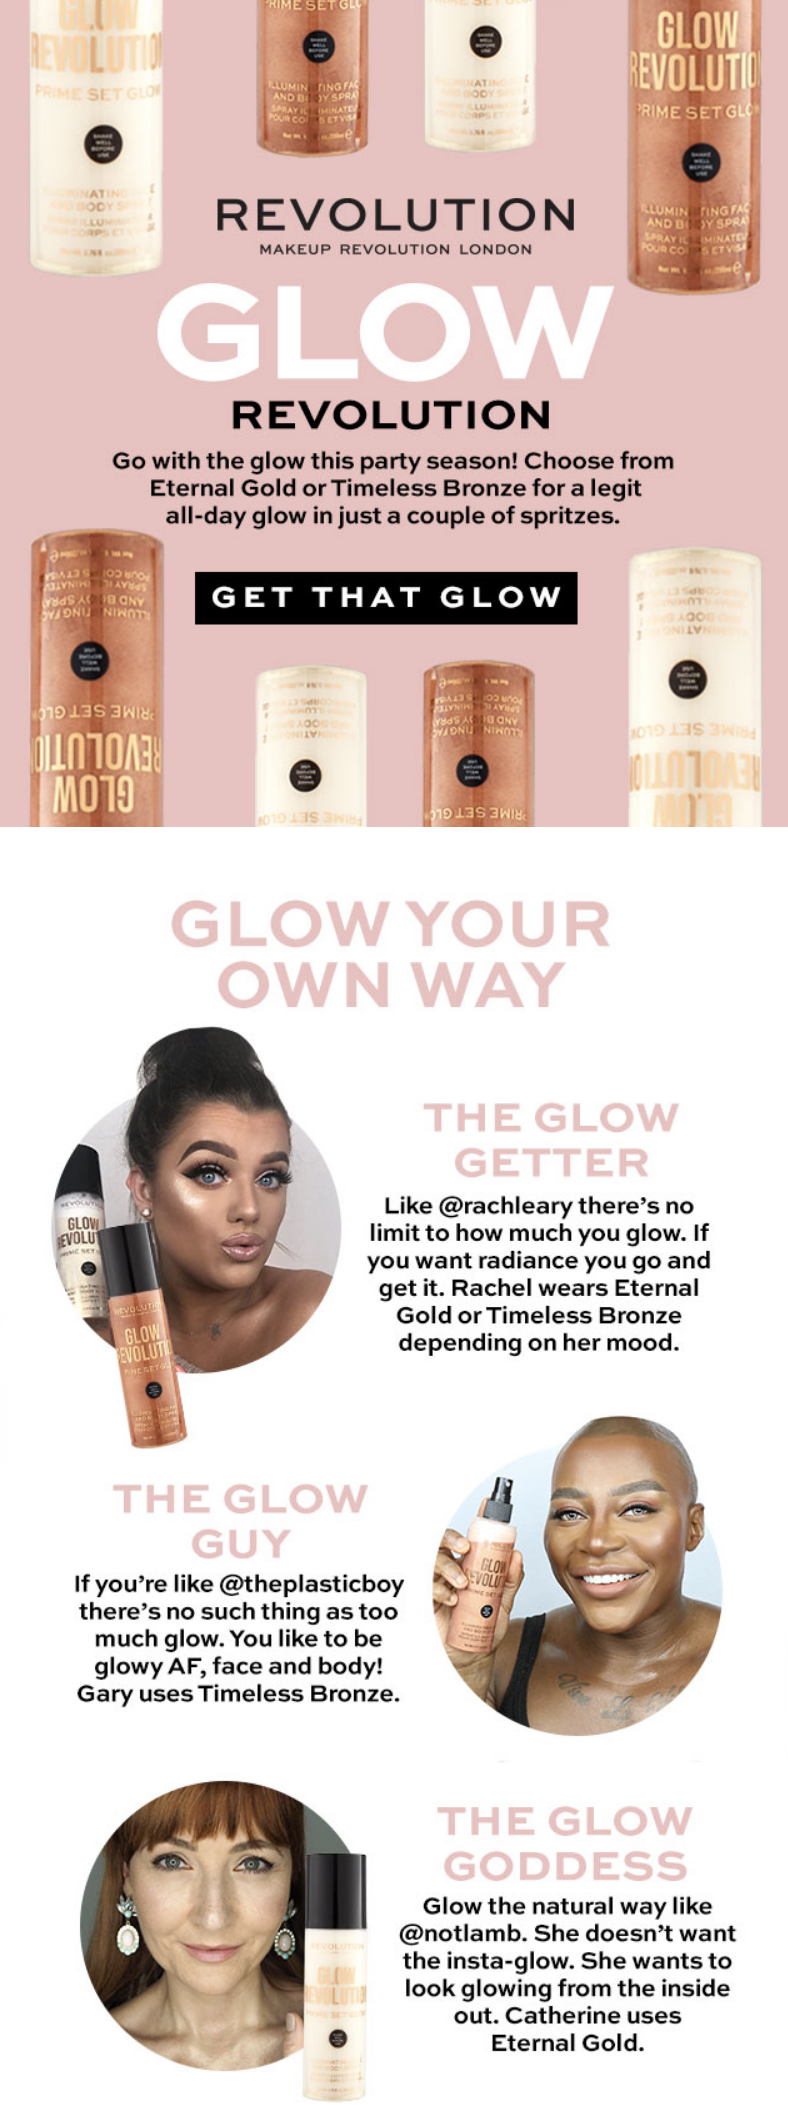 Go with the glow this party season with Revolution Illuminating face and body spray. The perfect mul...